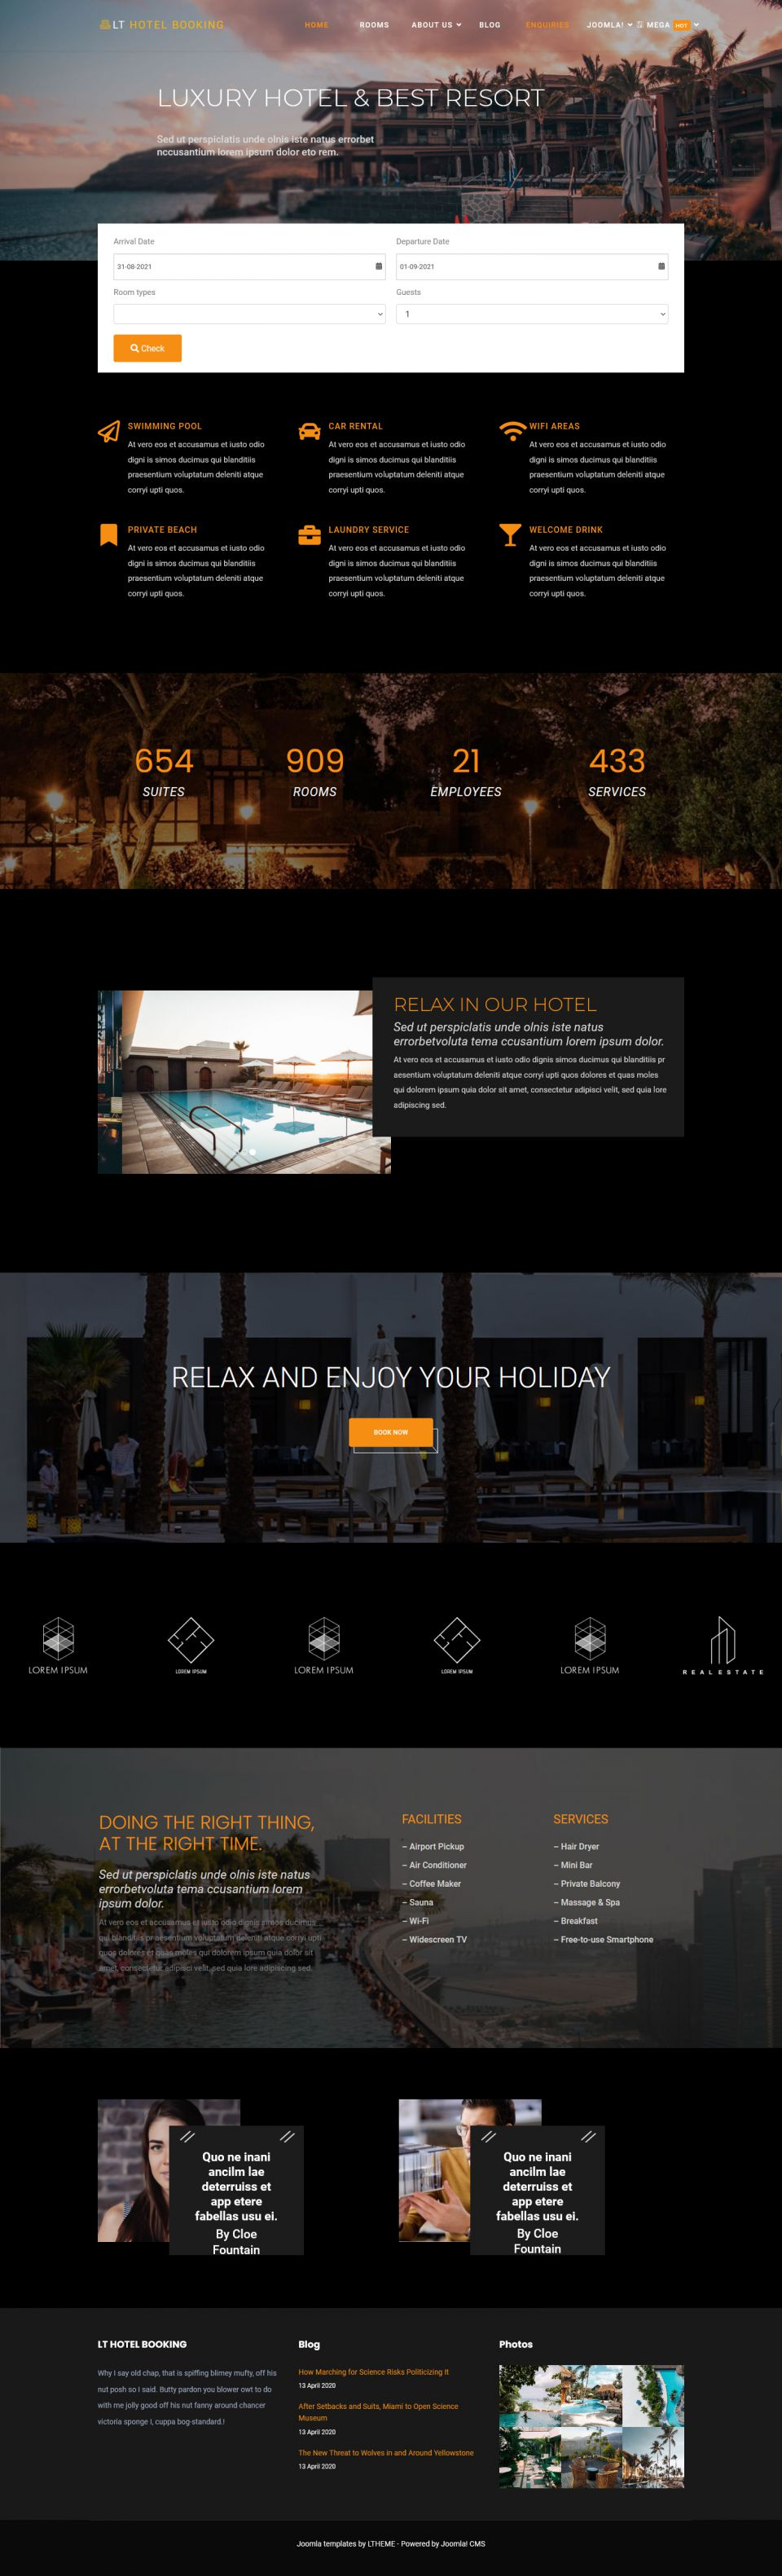 LTheme Hotel Booking v1.0.0 - template hotel booking for Joomla